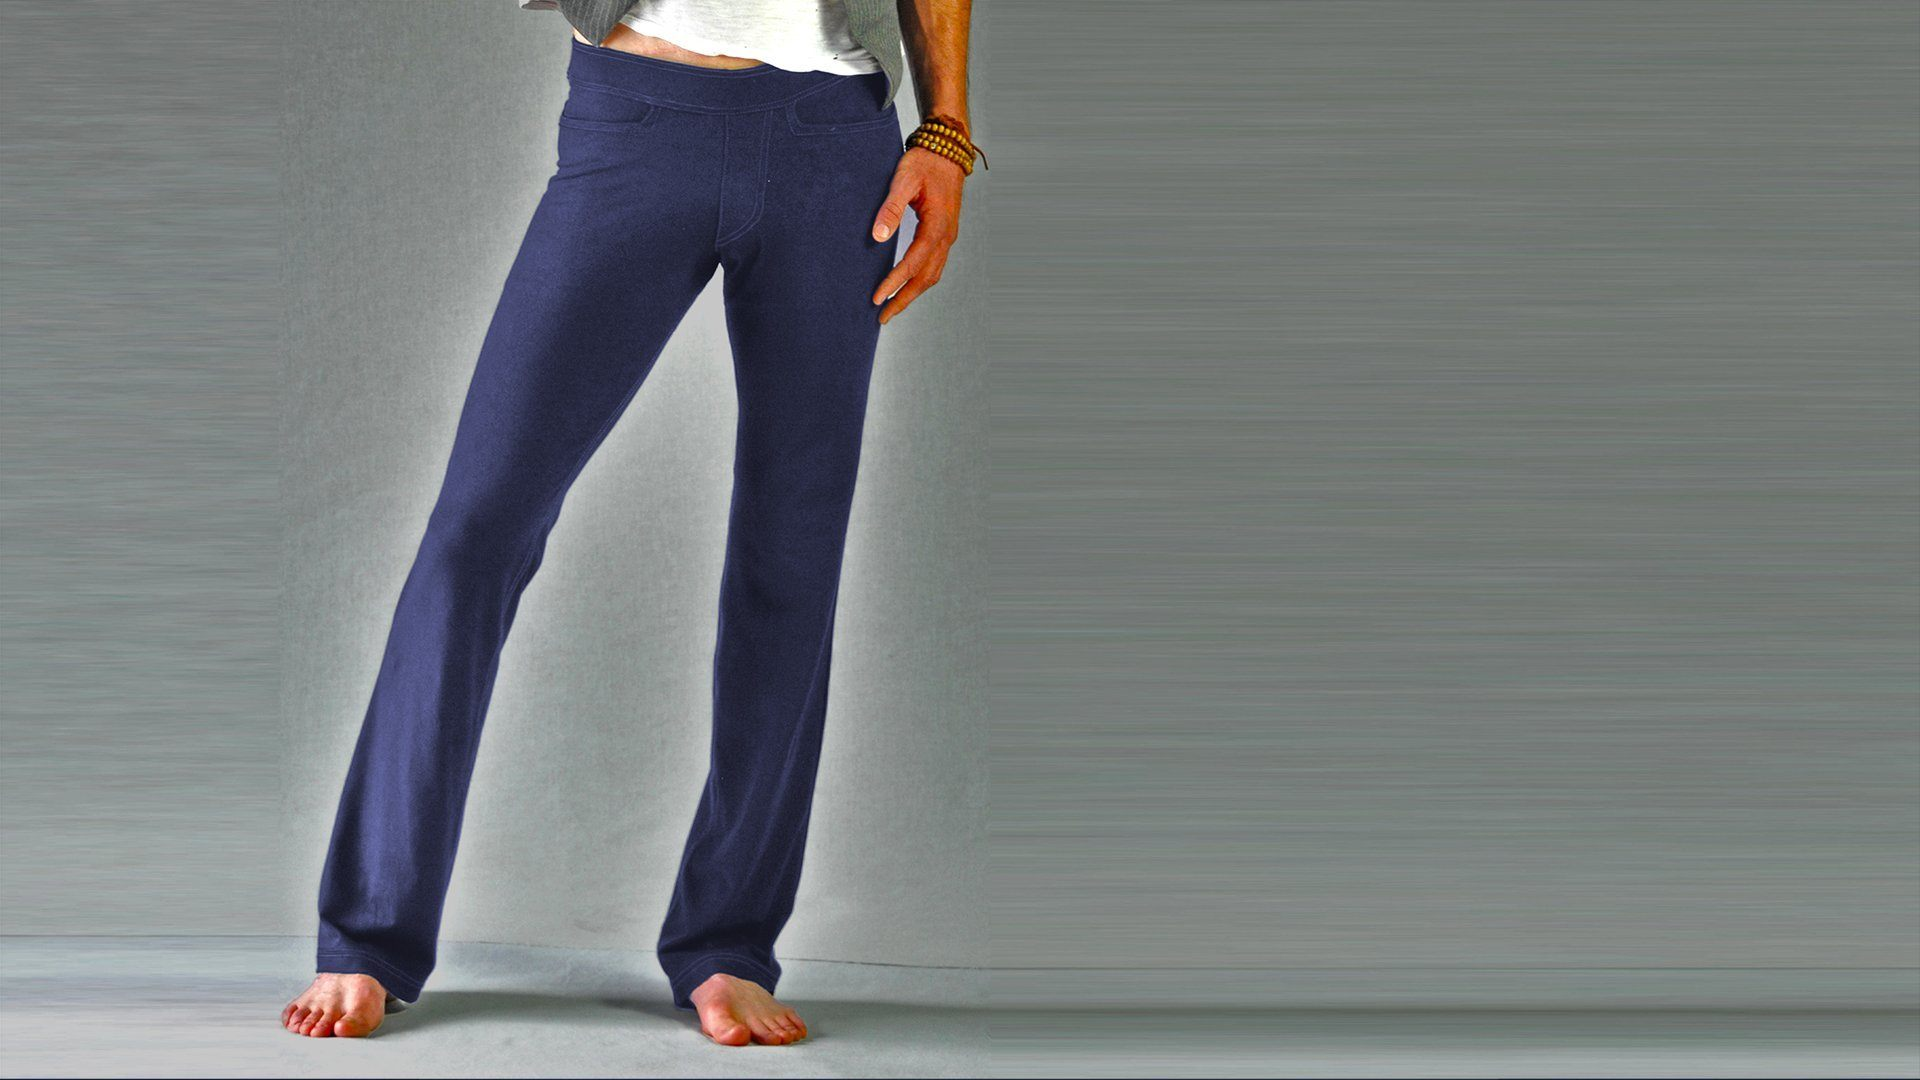 The Bhujang Classic Cobra Pants is the finest men's garment I have ever worn. - Kurtis L., actual buyer